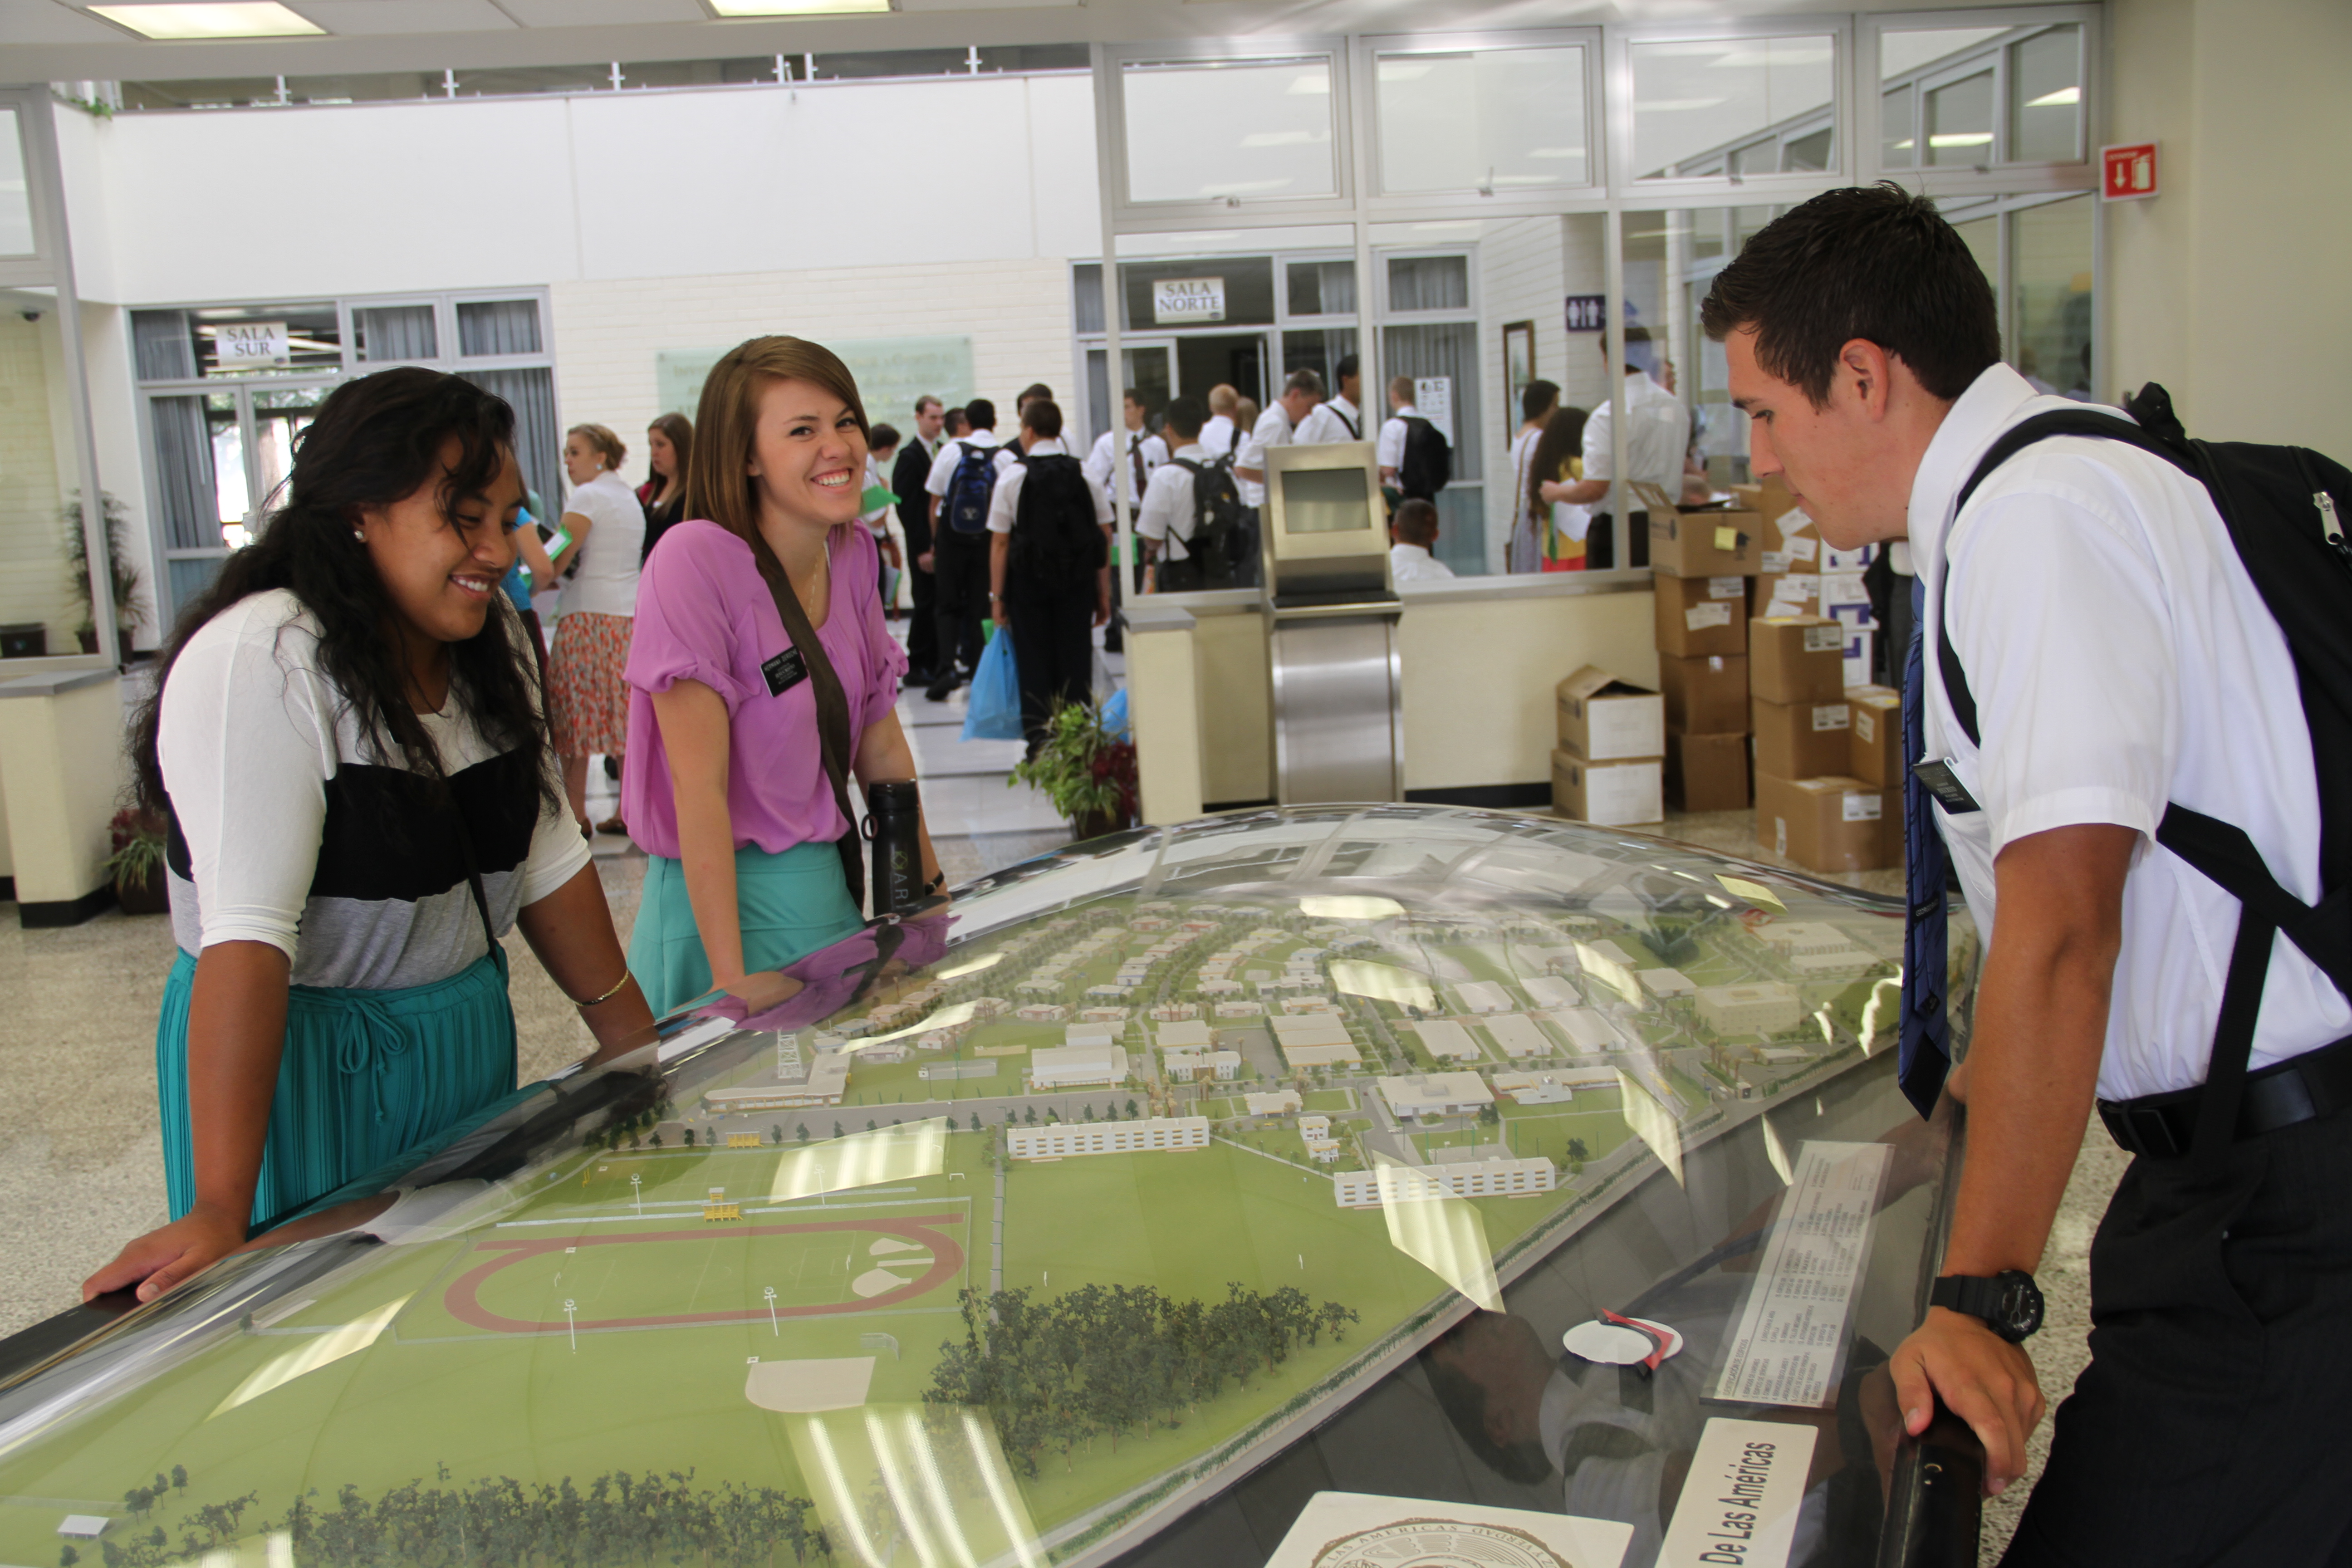 Missionaries study the 3-dimensional map of the Mexico Missionary Training Center in August 2013.